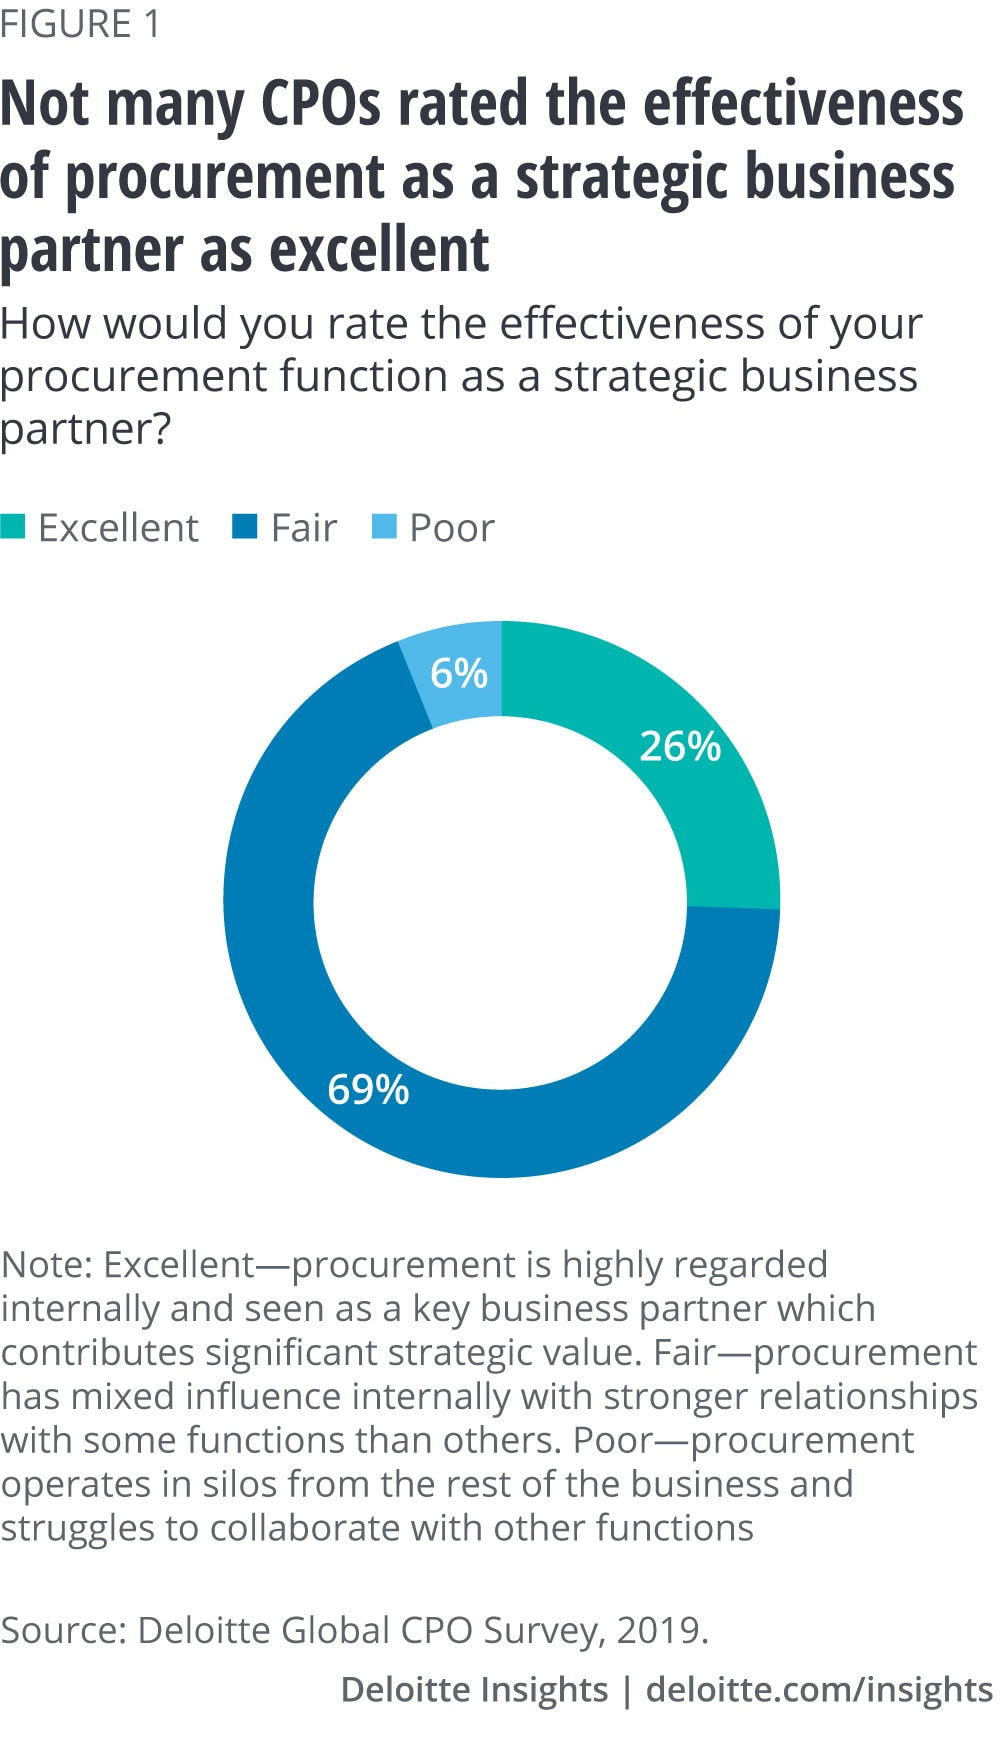 Not many CPOs rated the effectiveness of procurement as a strategic business partner as excellent